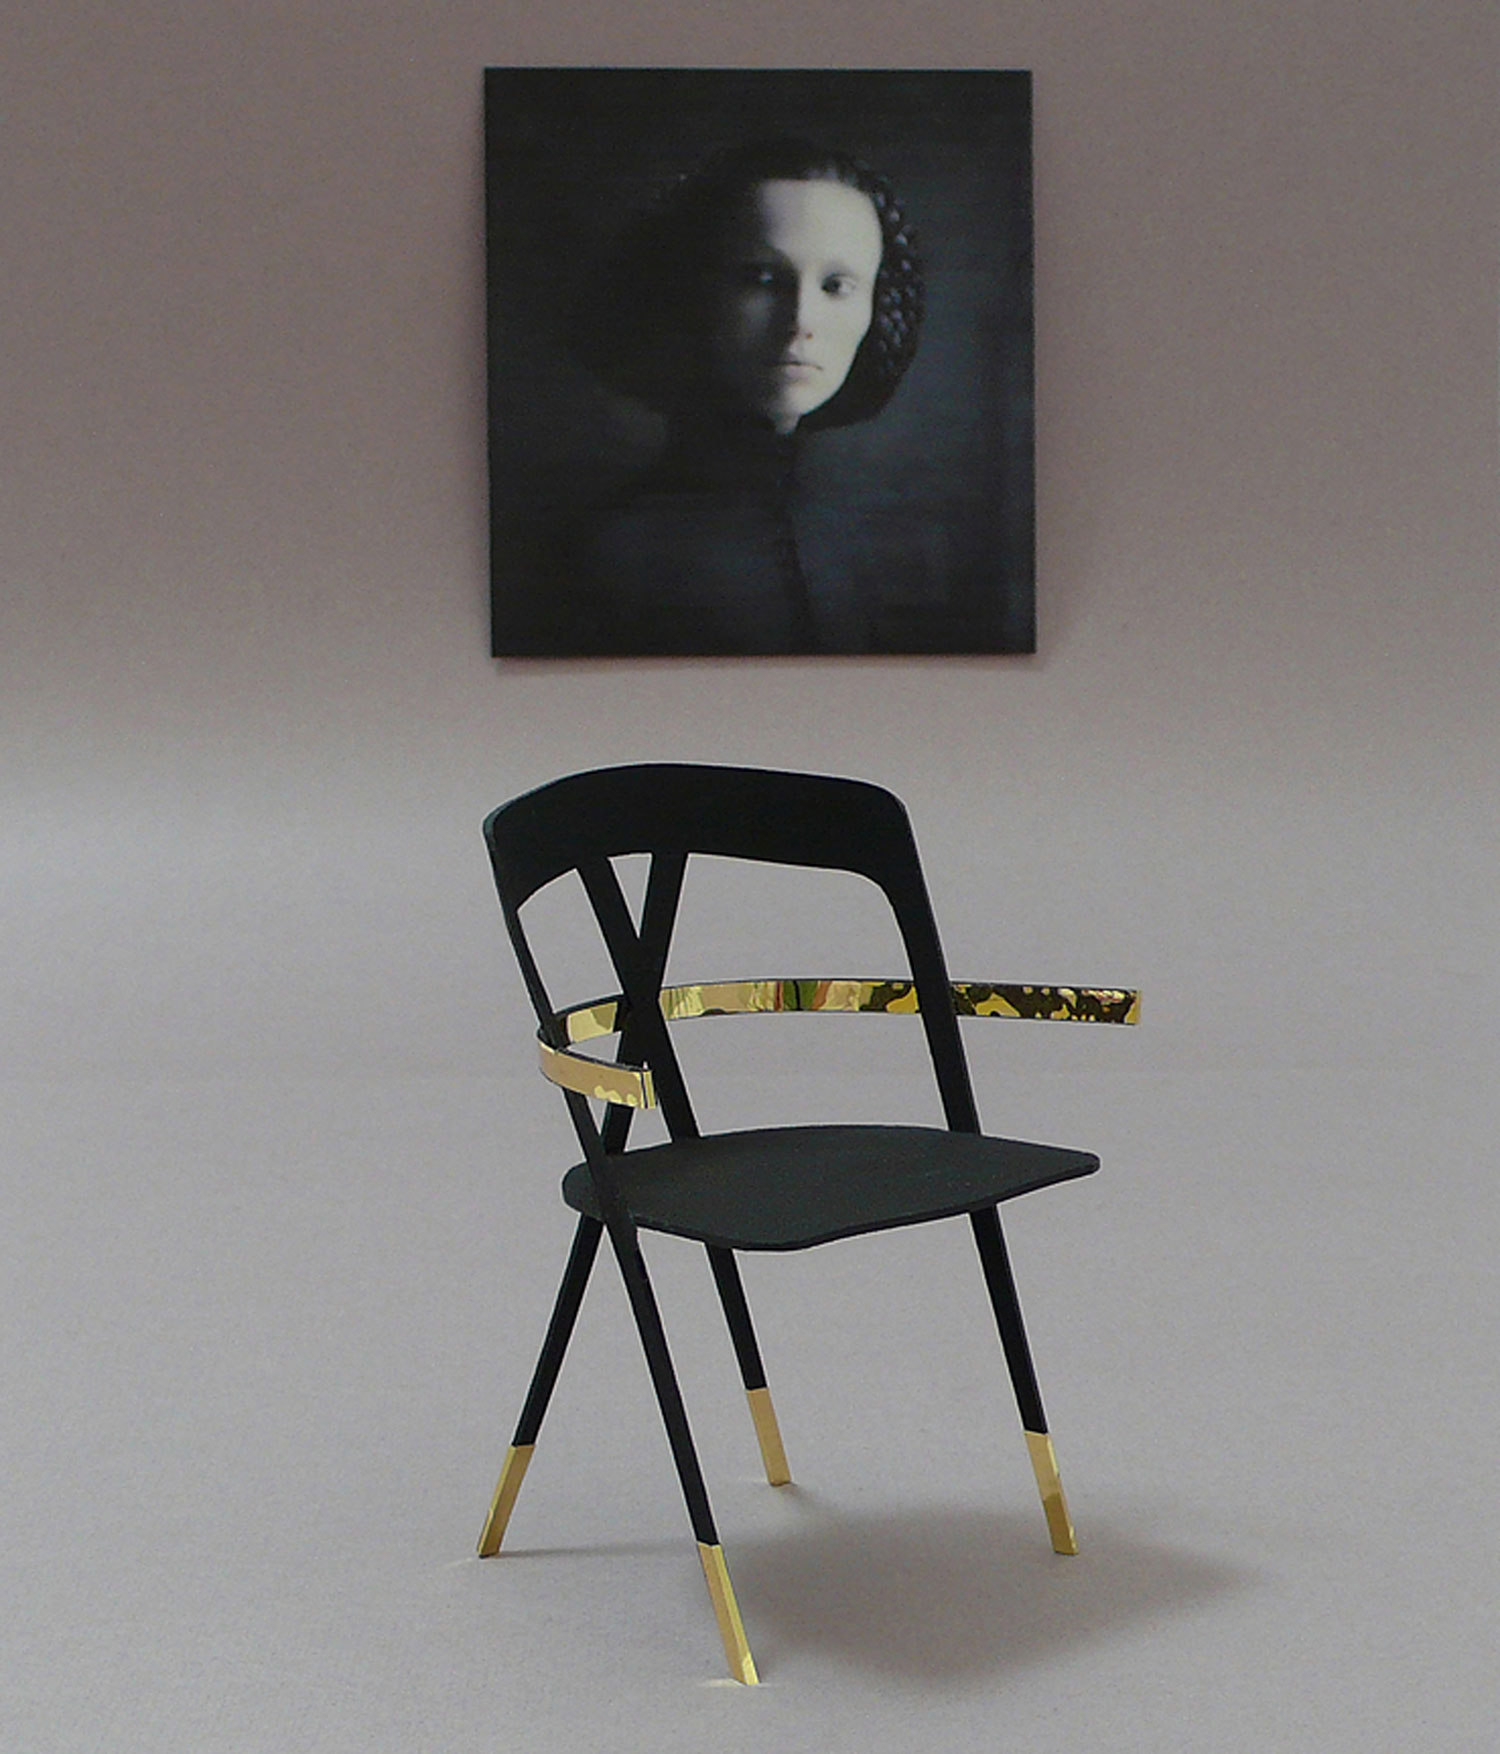 X-Federation Chair by Victor Vetterlein | Yellowtrace.